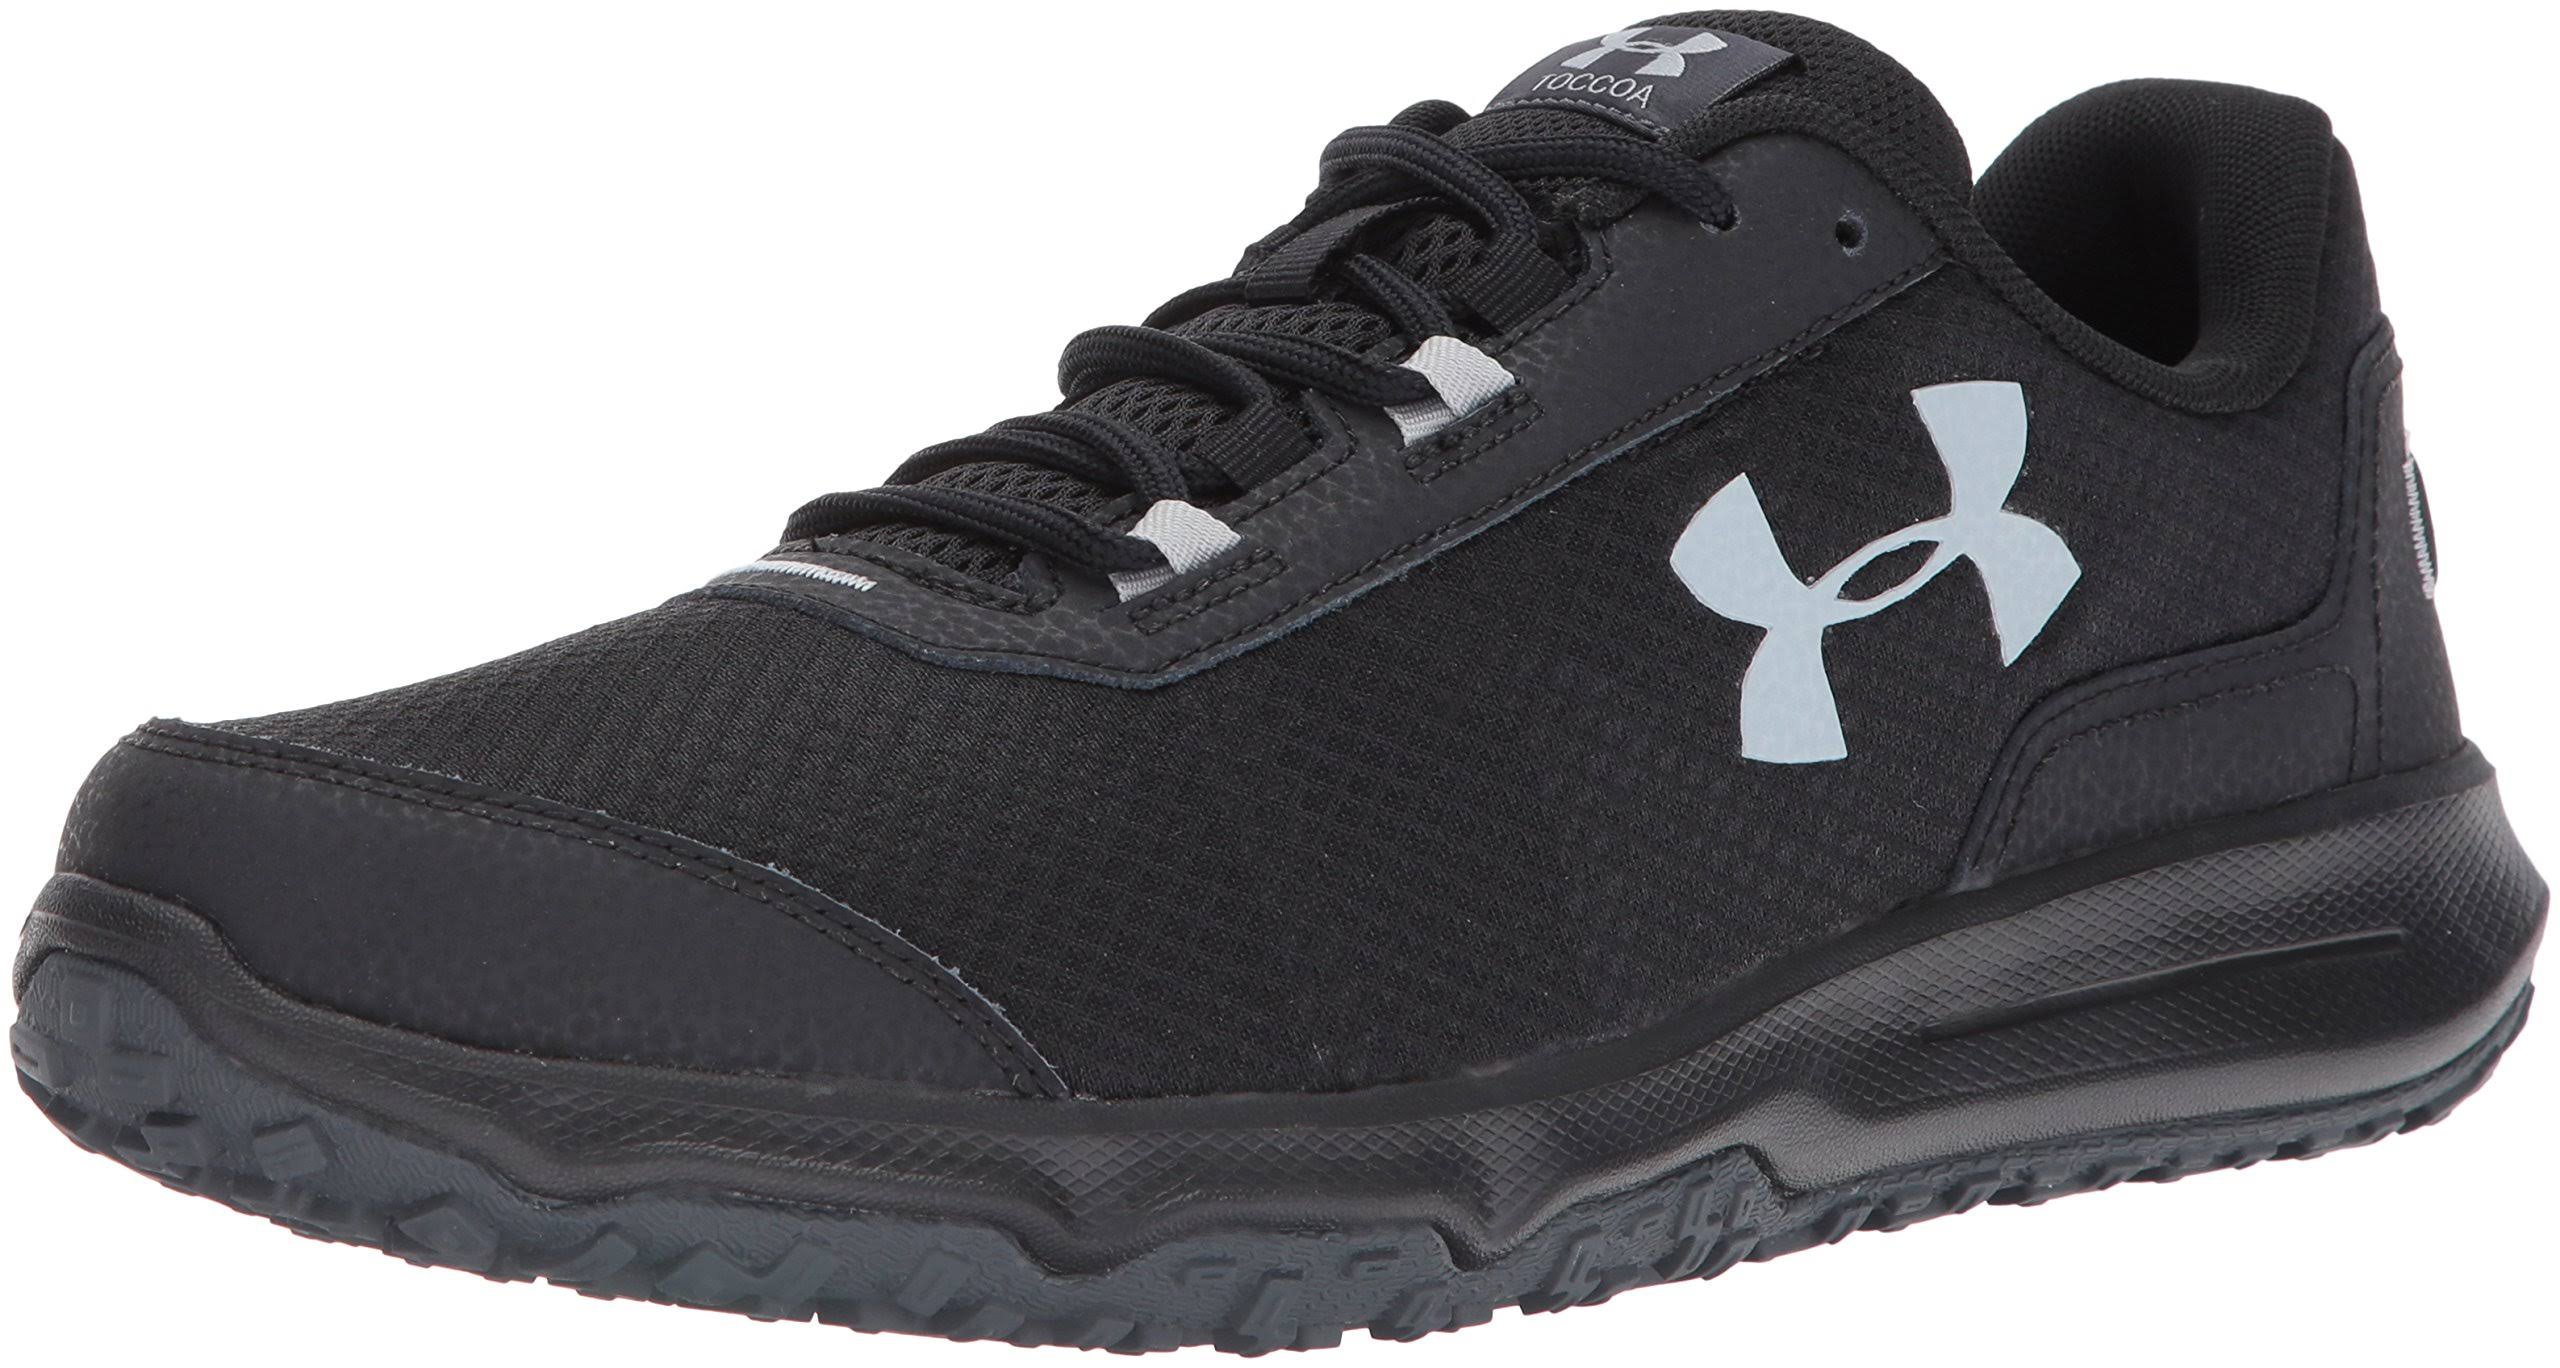 Grey008b hardloopschoen Toccoa Under Armour herenStealth voor MLSUVGpqz